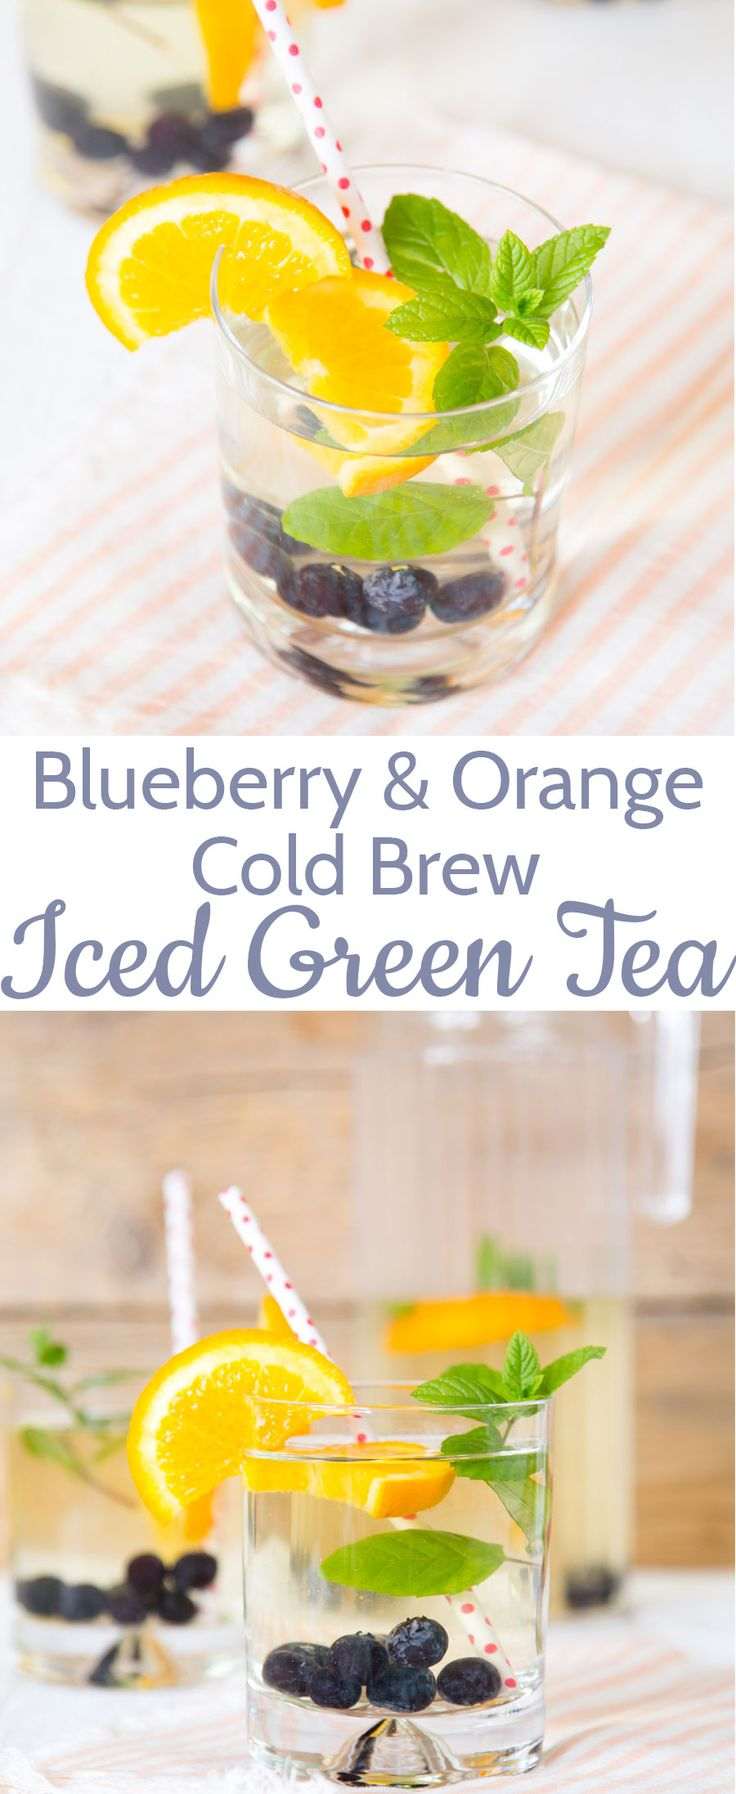 Cold brew tea is a refreshing and less bitter take on iced tea, with no need for added sugar. This thirst quenching version is made with green tea, flavoured with orange, blueberries and mint.